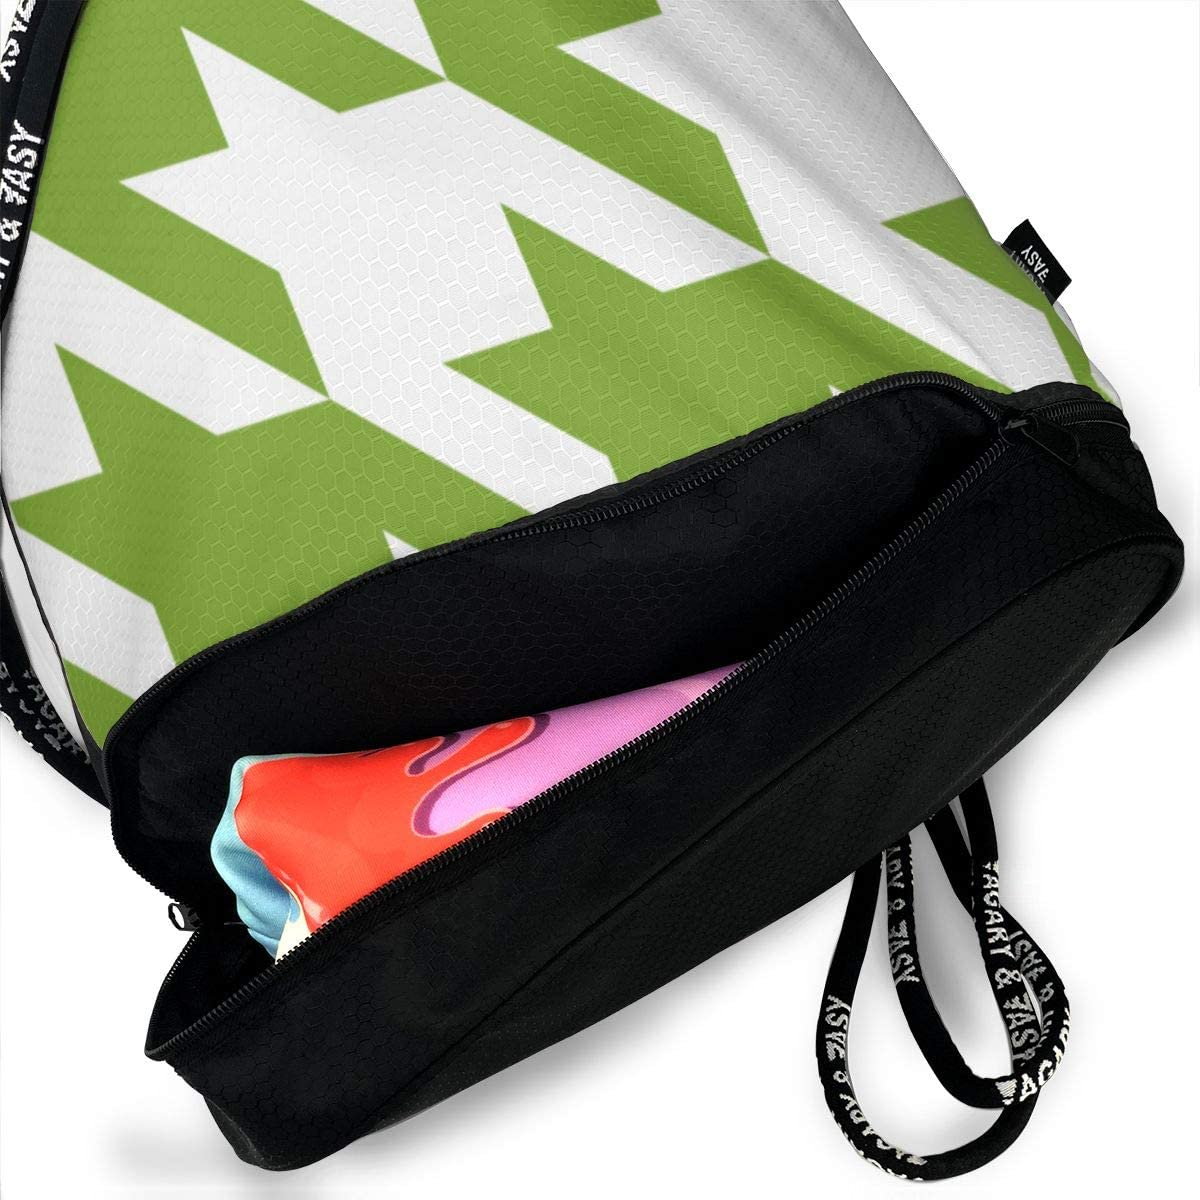 Lime Green Houndstooth Drawstring Backpack Sports Athletic Gym Cinch Sack String Storage Bags for Hiking Travel Beach